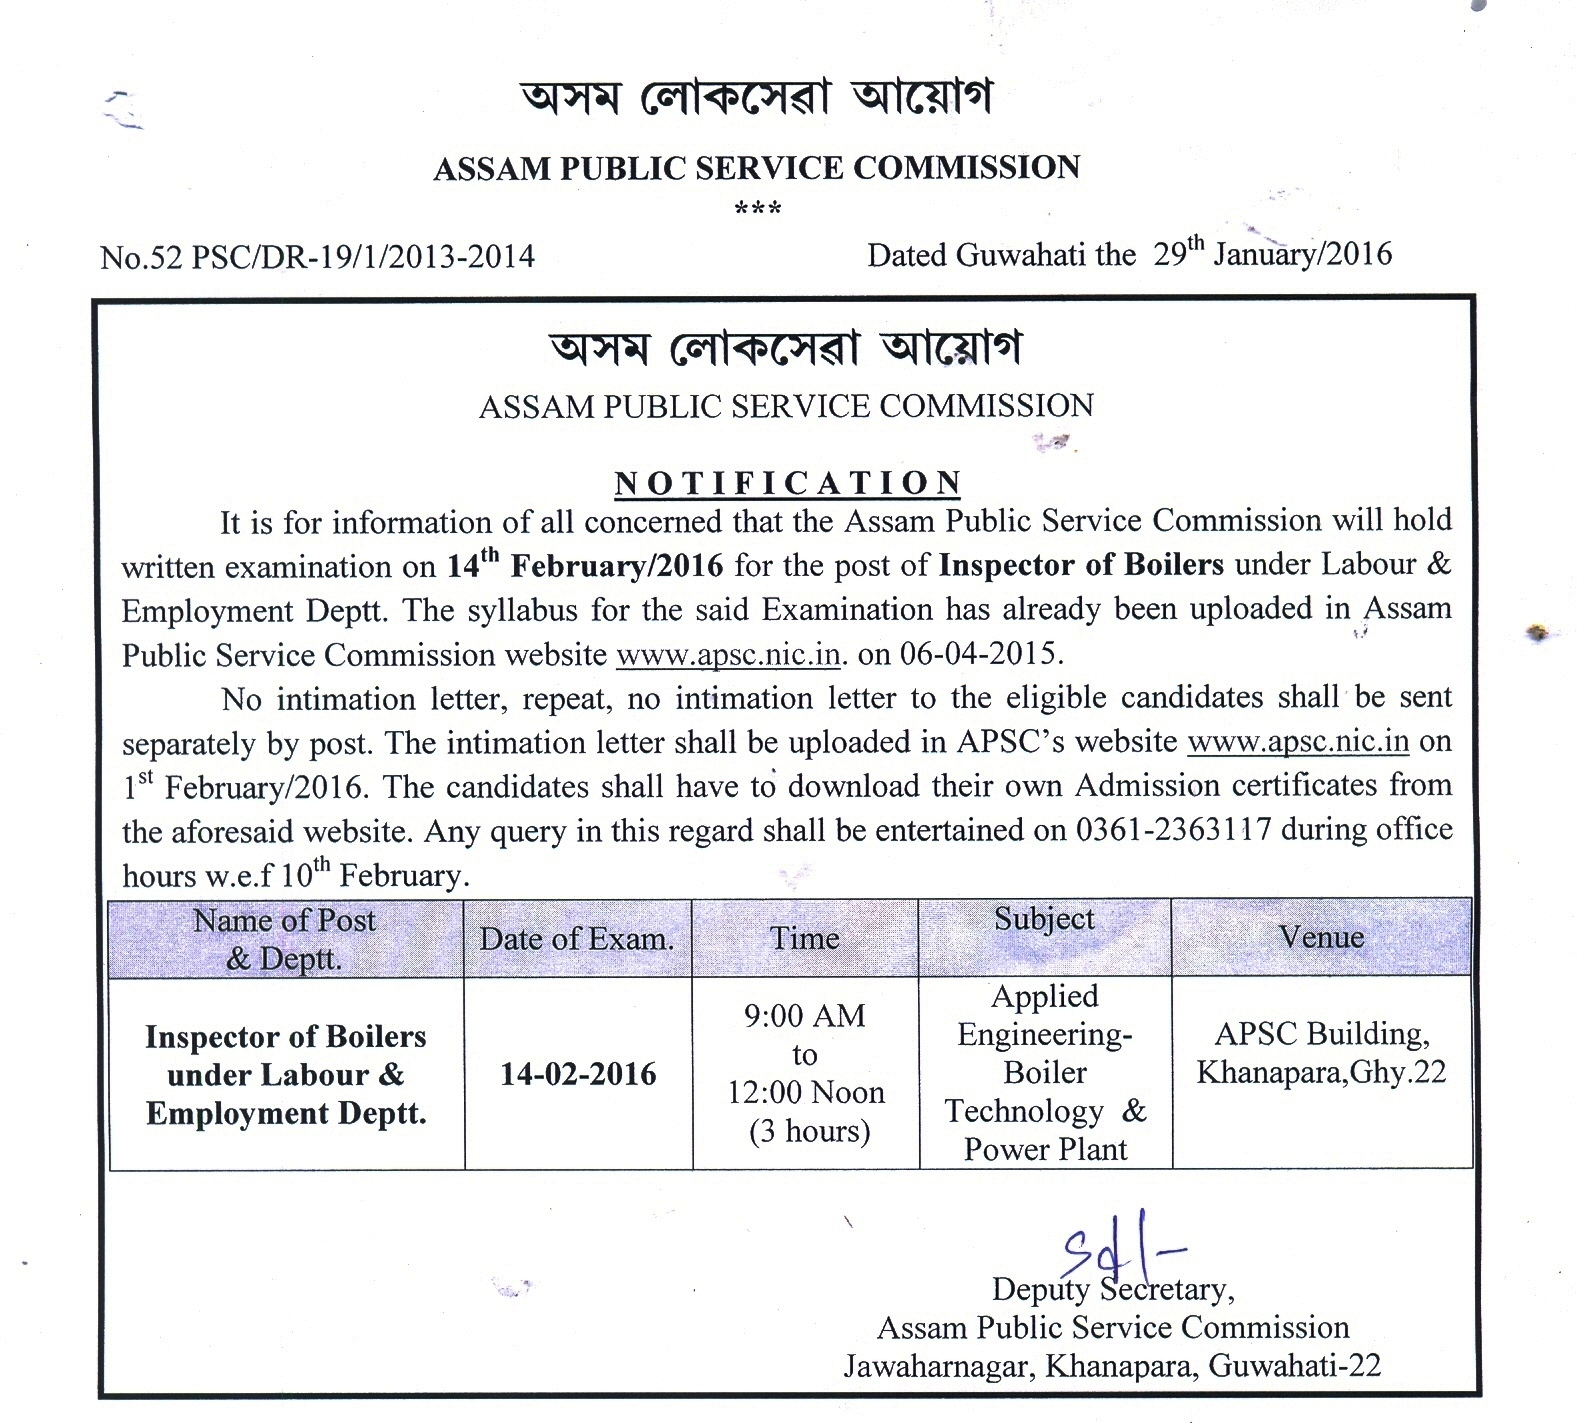 Assam public service commission notification for written examination for the post of inspector of boilers under le deptt thecheapjerseys Gallery